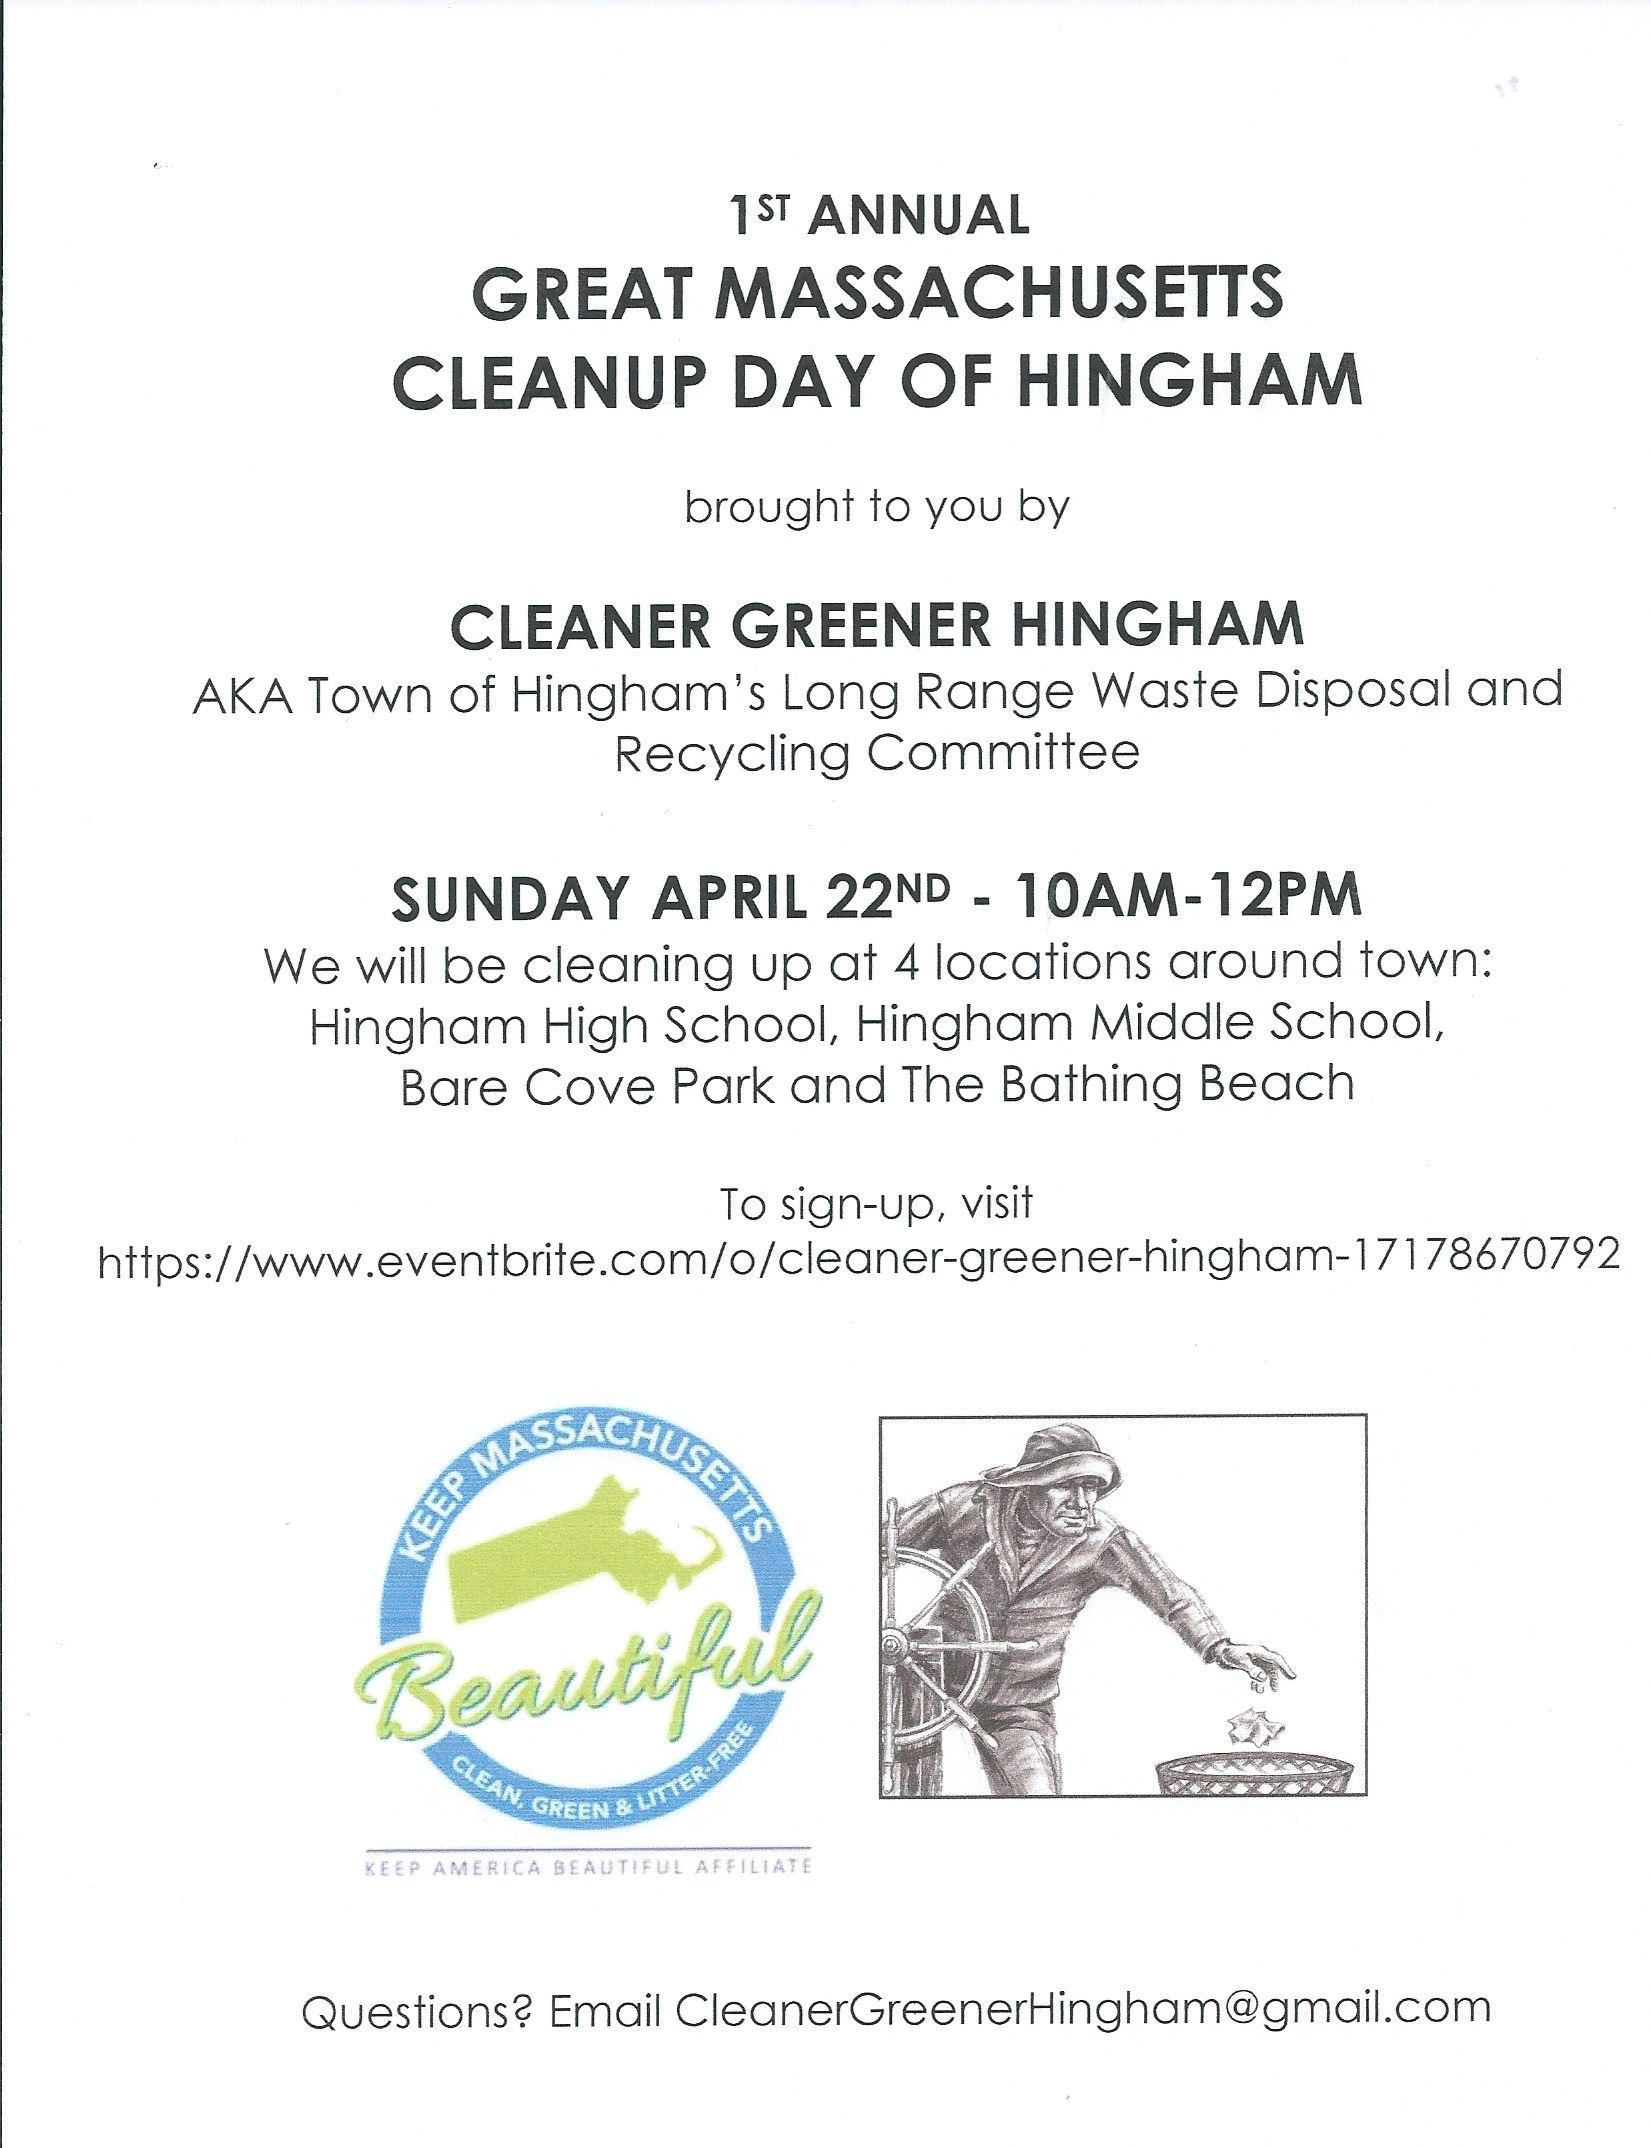 Cleaner Greener Hingham Cleanup Day Poster 2018